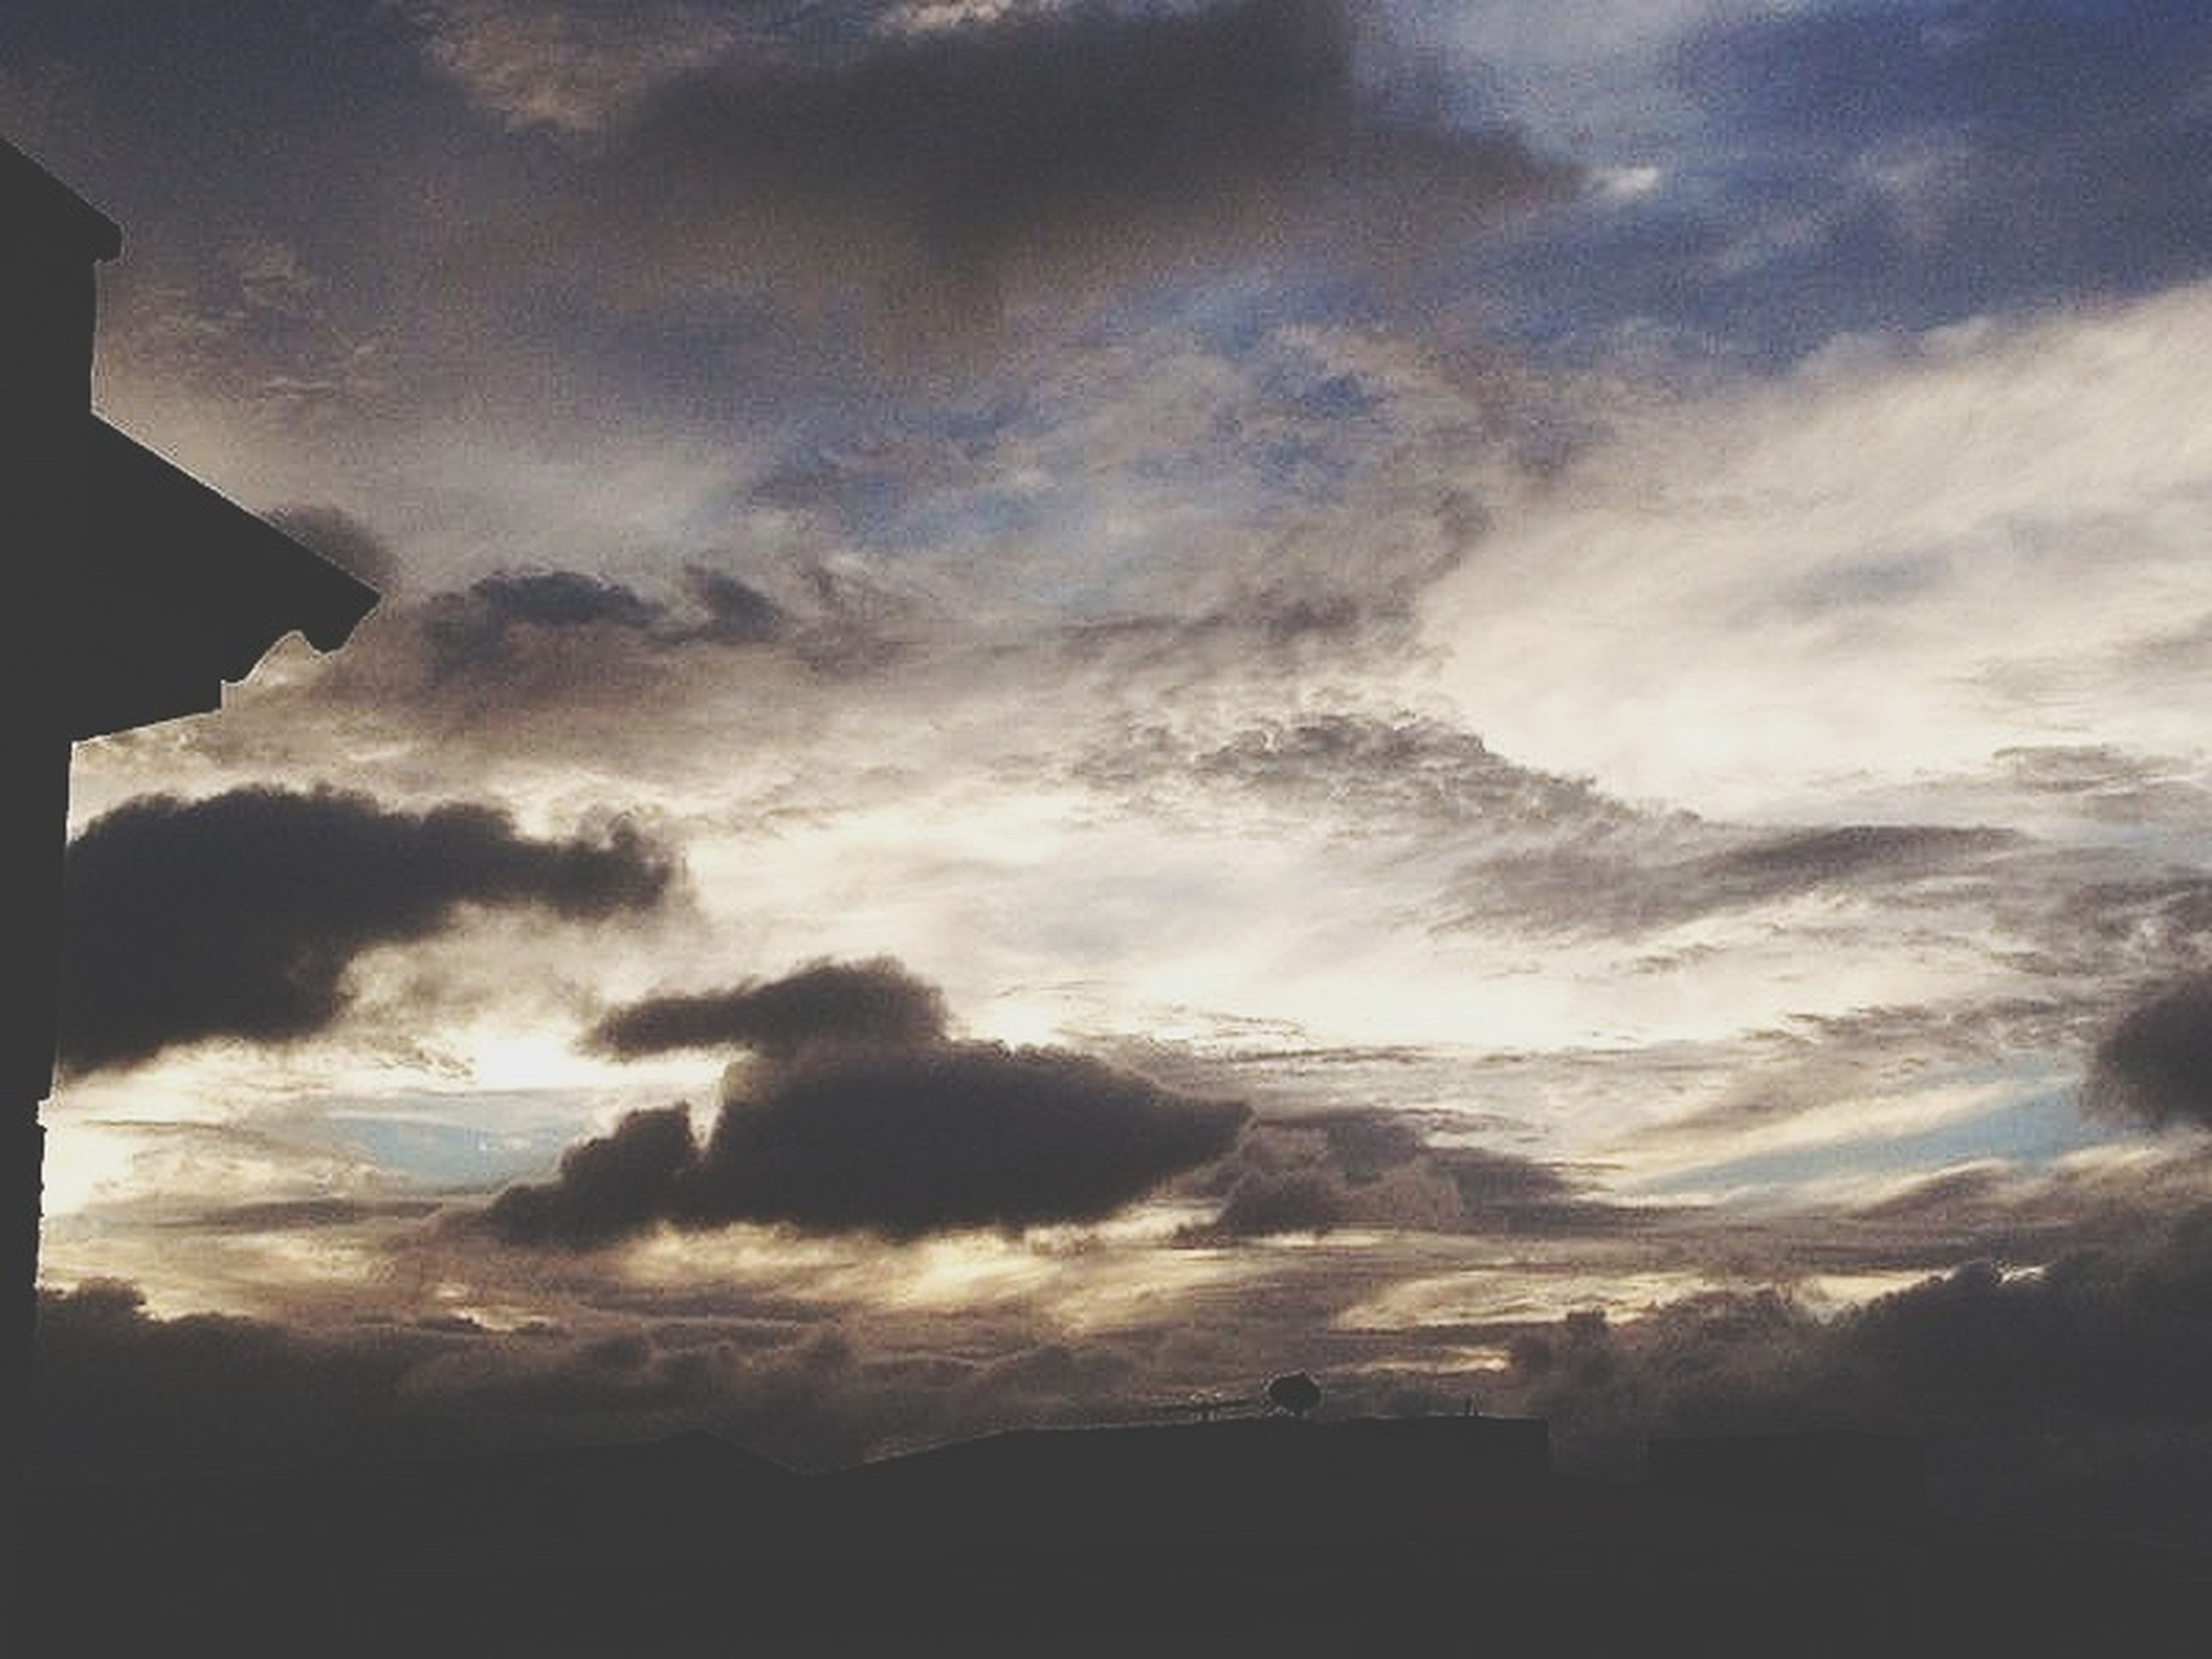 sky, cloud - sky, cloudy, scenics, beauty in nature, silhouette, tranquility, weather, tranquil scene, cloud, nature, overcast, low angle view, cloudscape, sunset, dusk, dramatic sky, storm cloud, idyllic, landscape